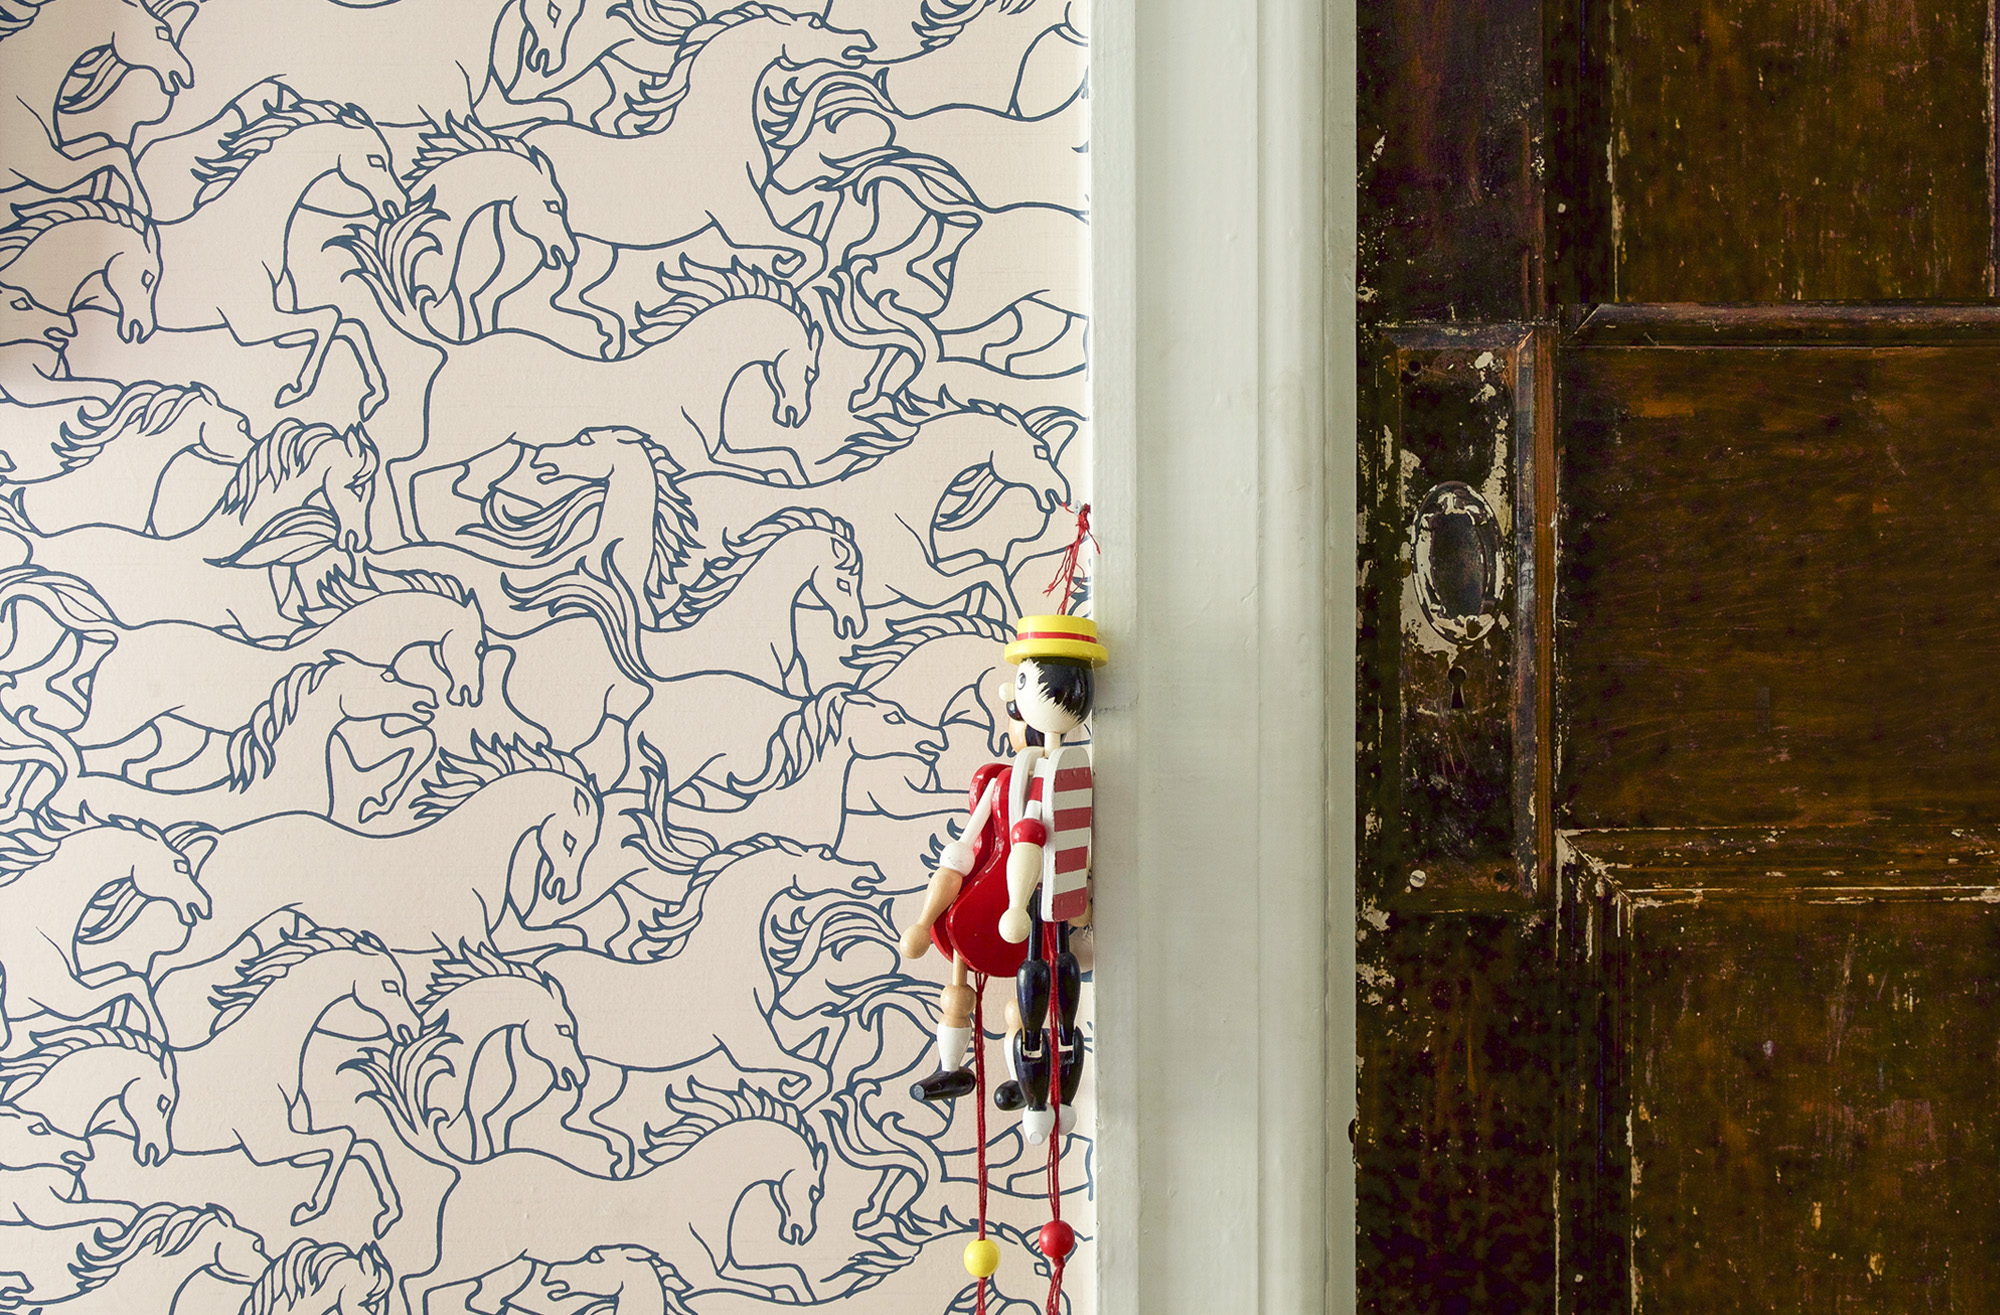 Stampeding horses by Florence Broadhurst - an enduring and dynamic design.